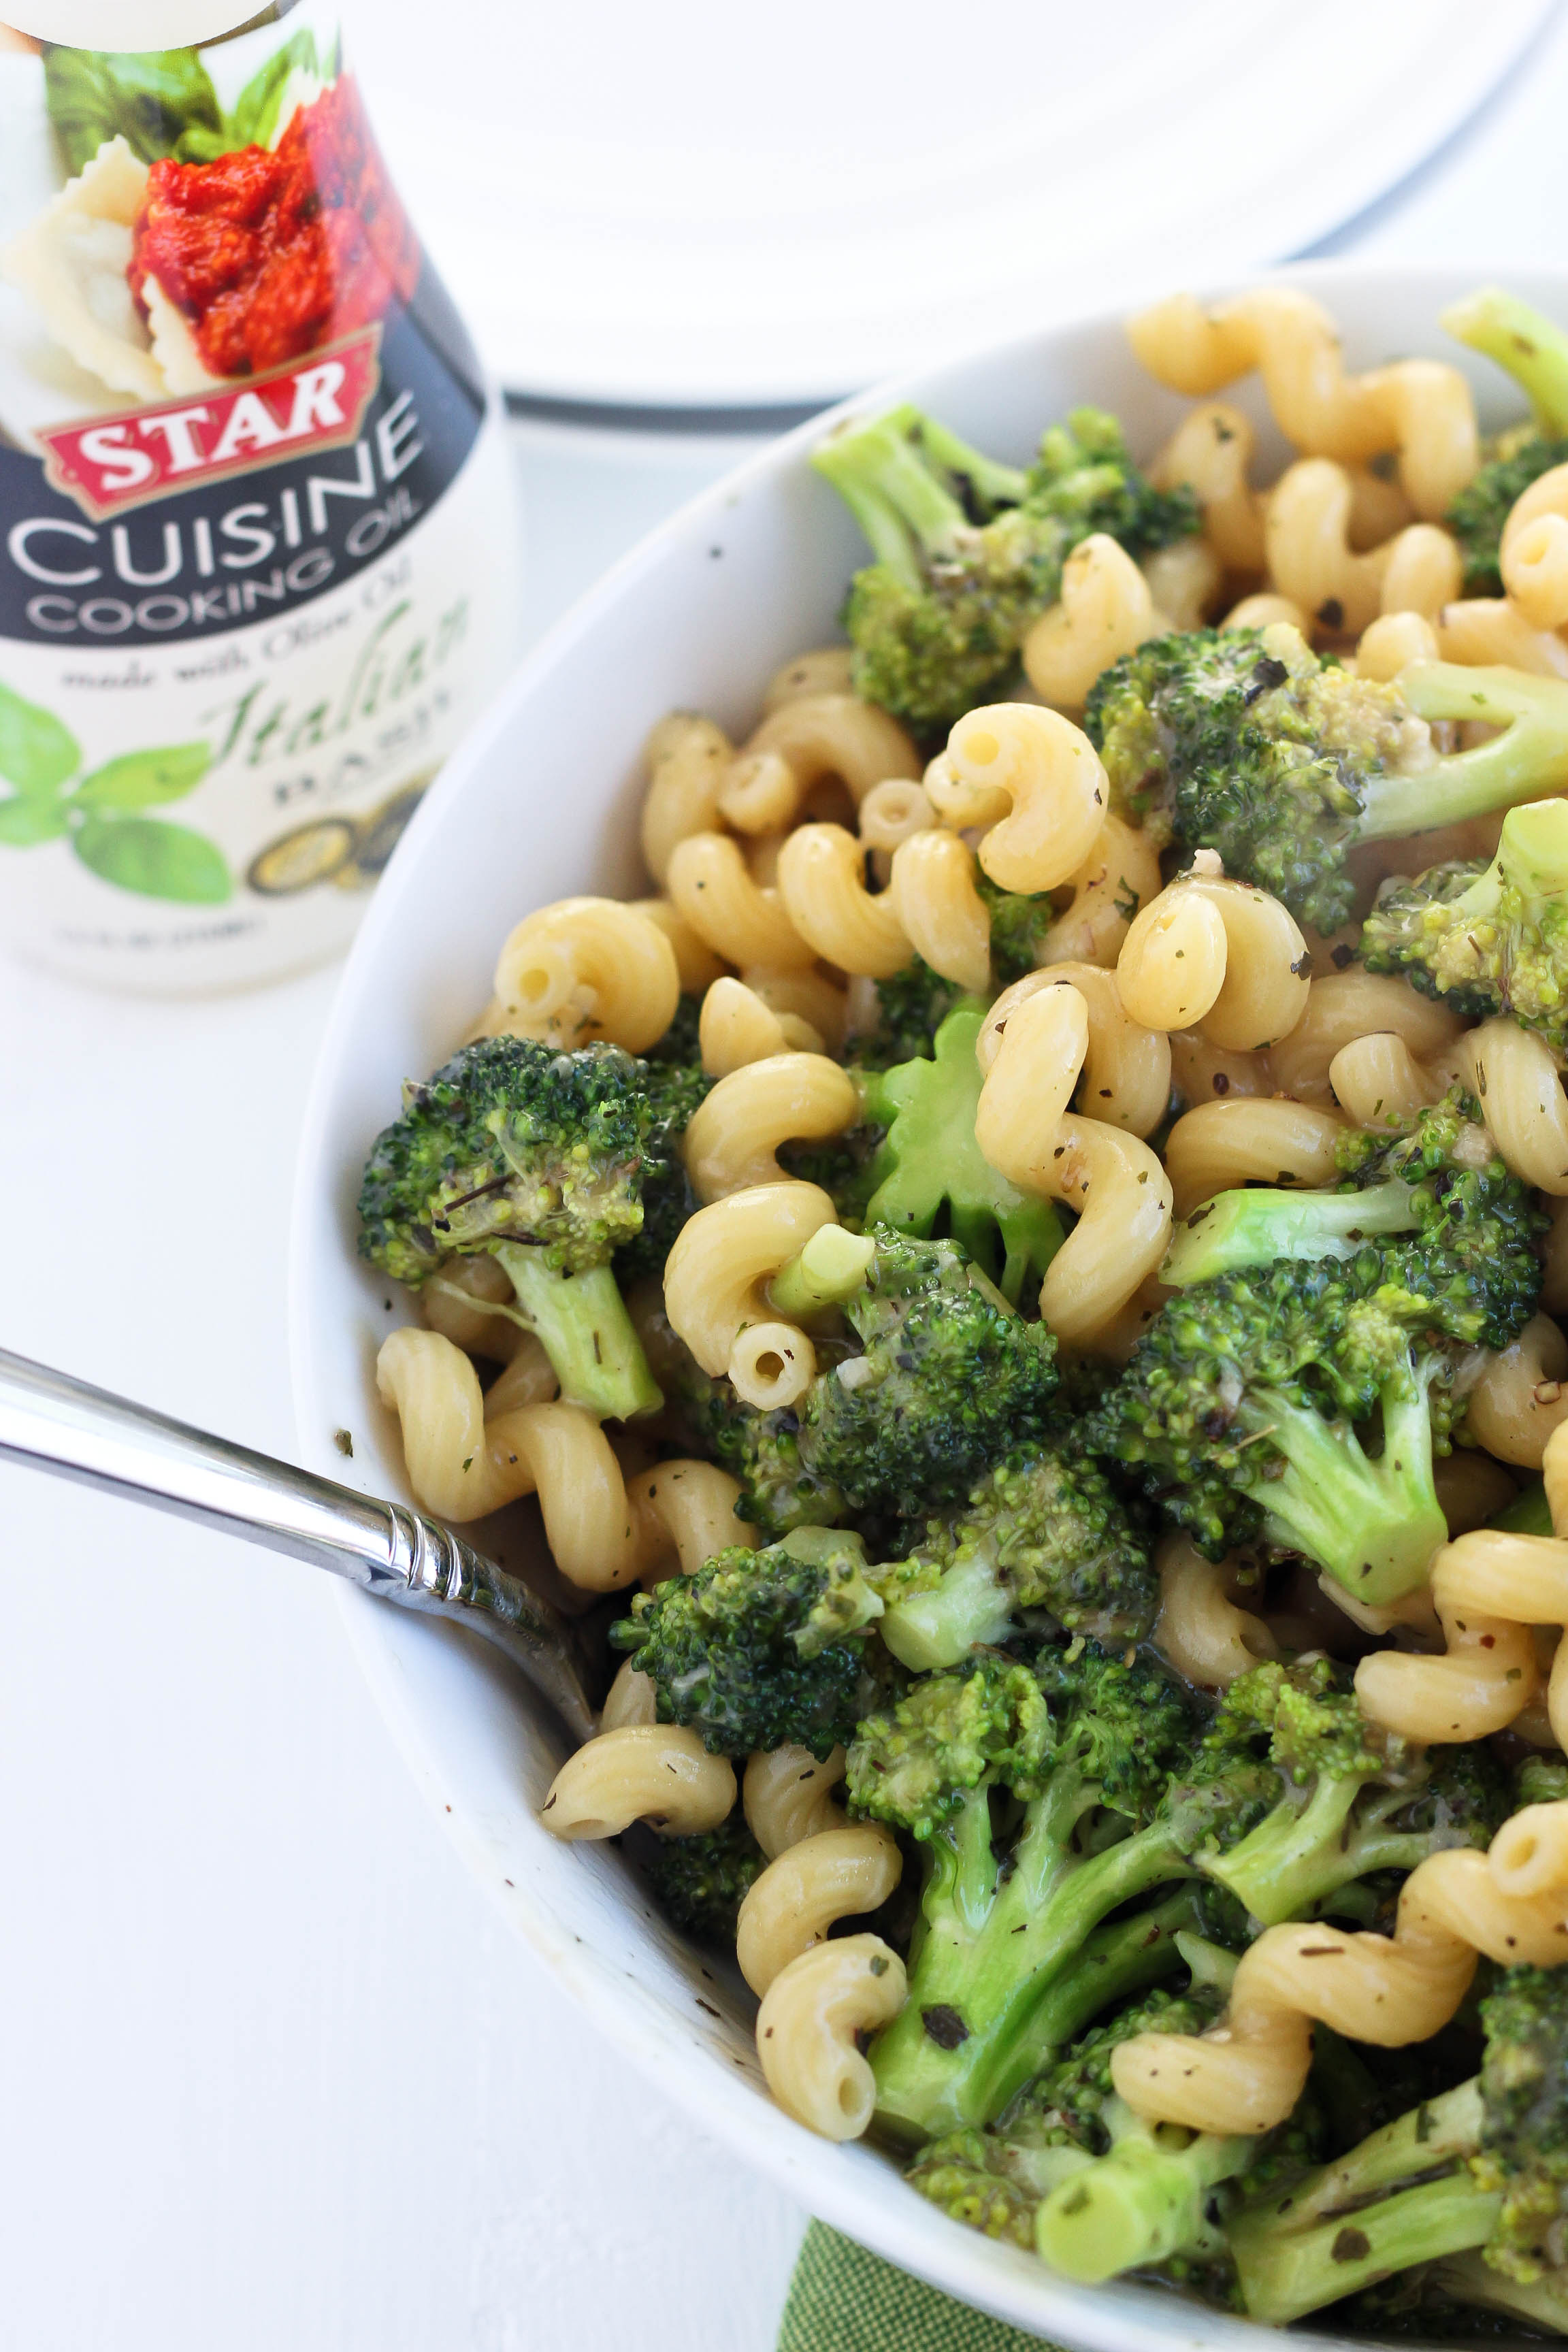 Garlic Herb Pasta With Broccoli Bake Your Day